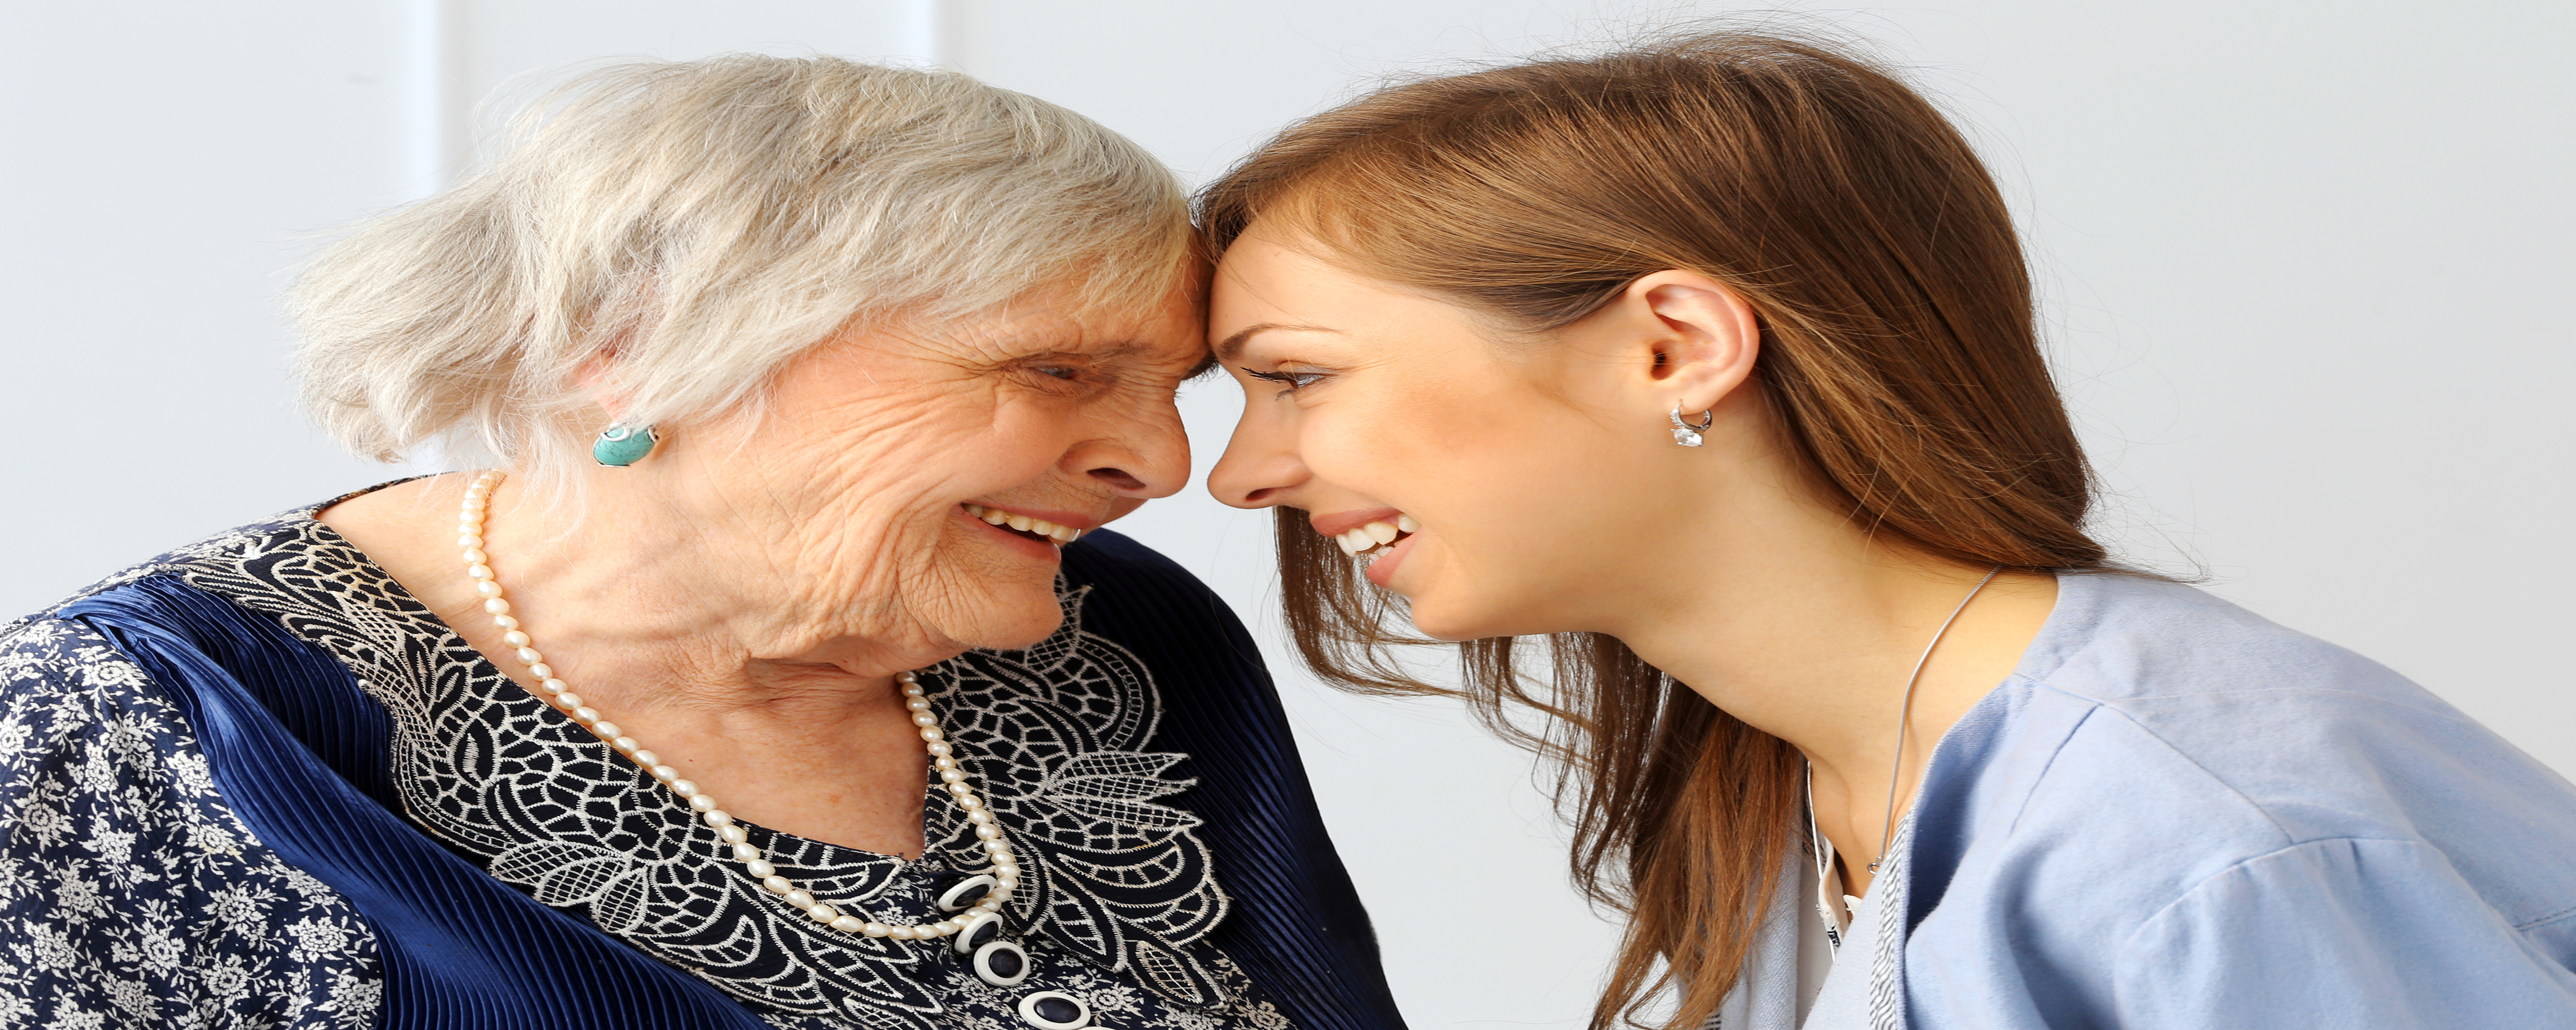 Aging adult and young person lovingly looking at each other